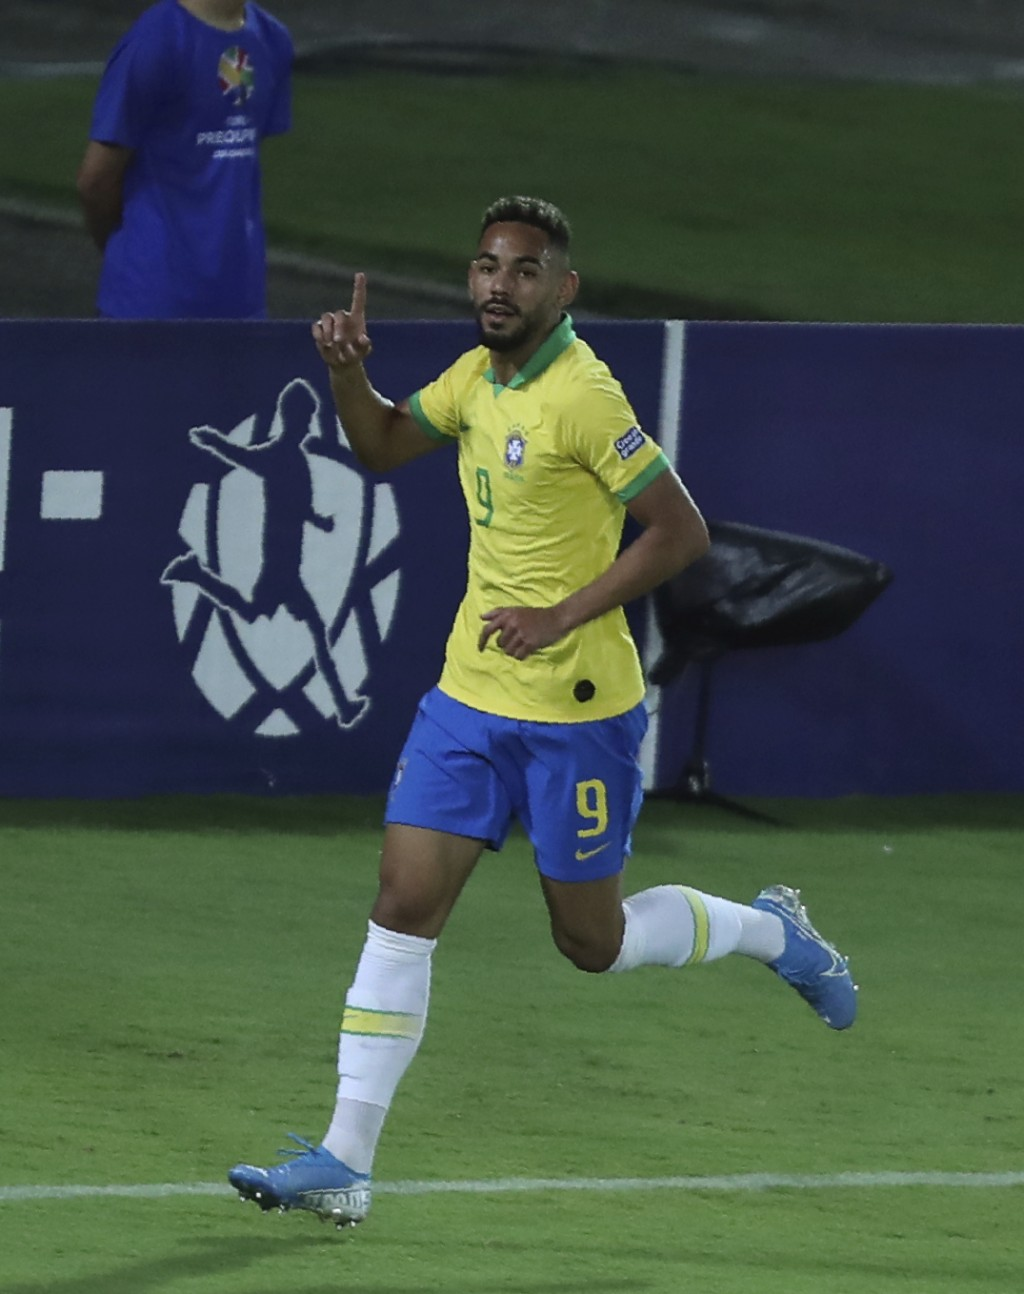 Brazil's Matheus Cunha celebrates after scoring his side's second goal against Bolivia during a South America Olympic qualifying U23 soccer matchat C